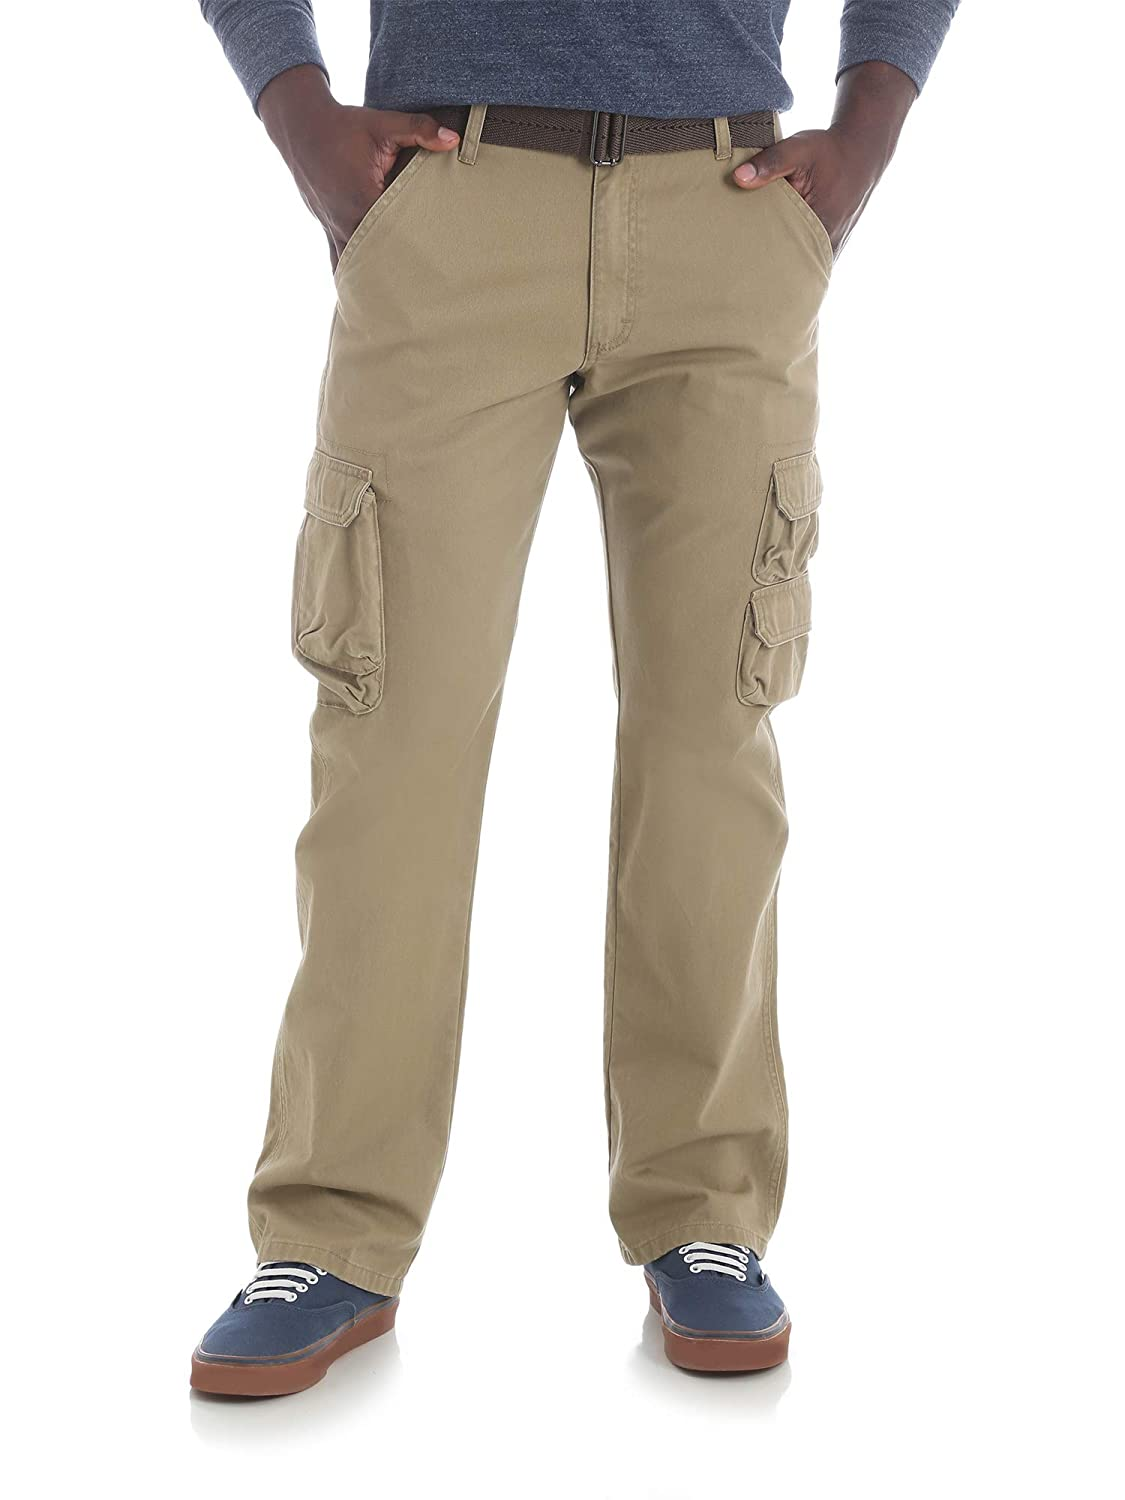 f2bf34ad Top7: Wrangler Men's Twill Cargo Pants with Belt (Khaki, Size 30 x 32)